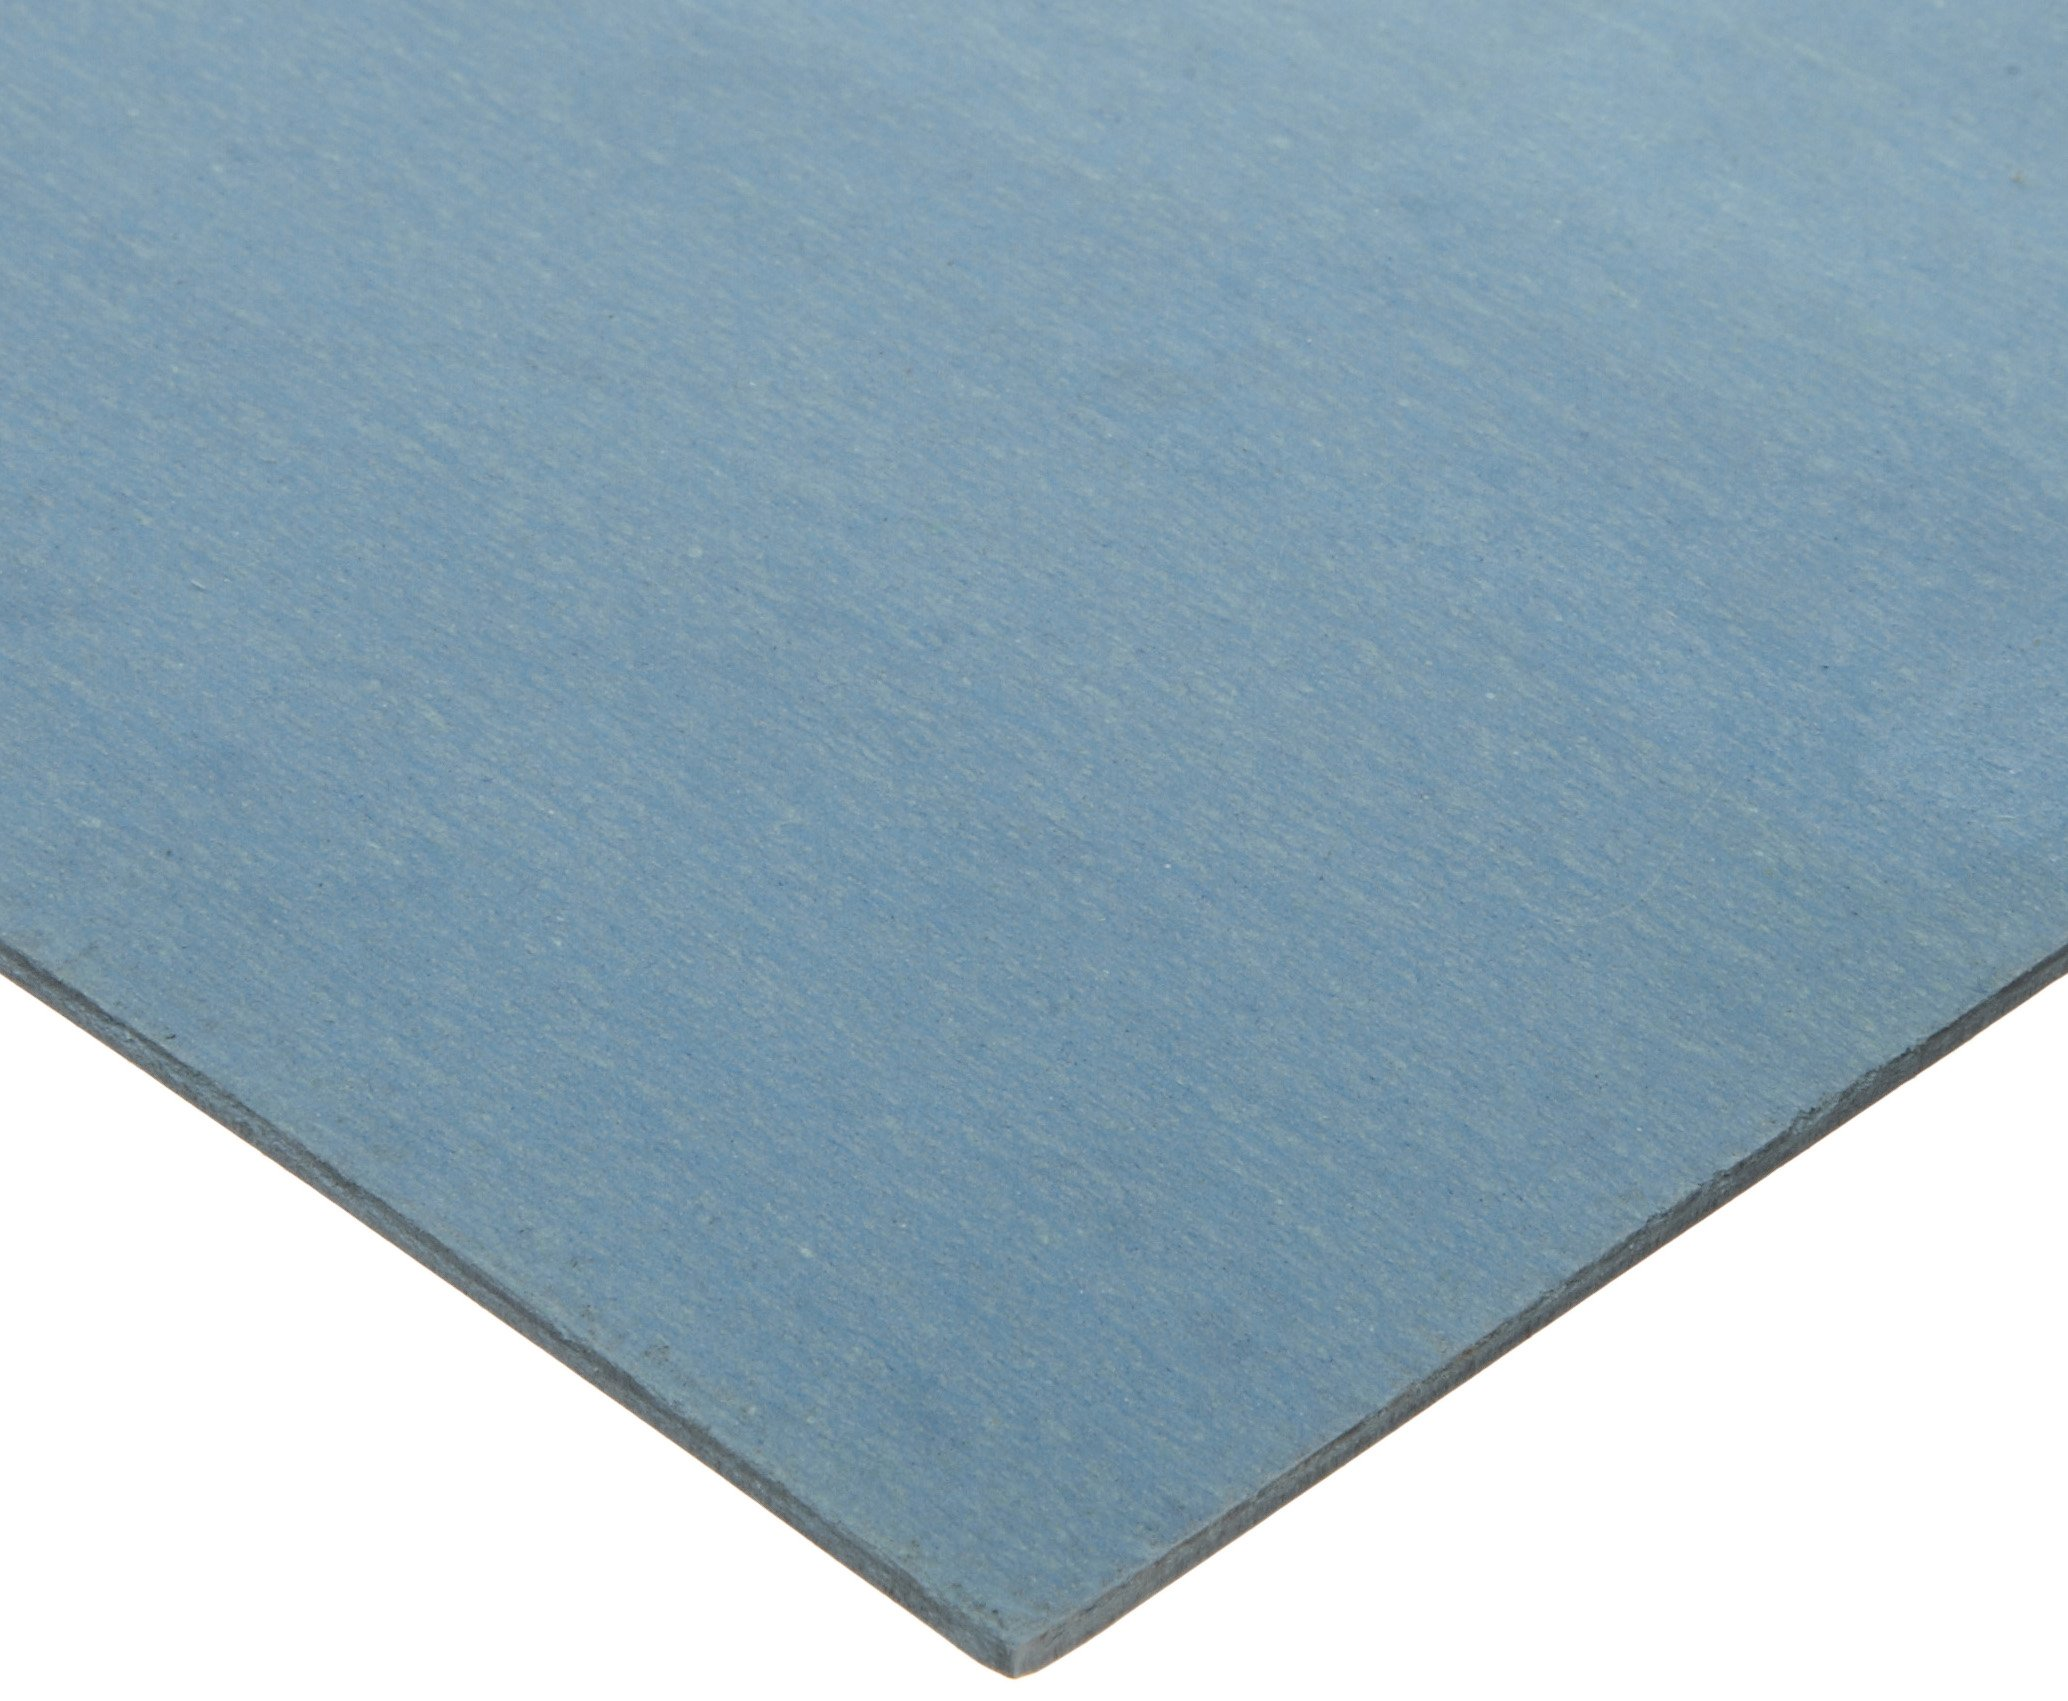 Aramid/Buna-N Sheet Gasket, Blue, 1/16'' Thick, 15'' × 15'' (Pack of 1) by Small Parts